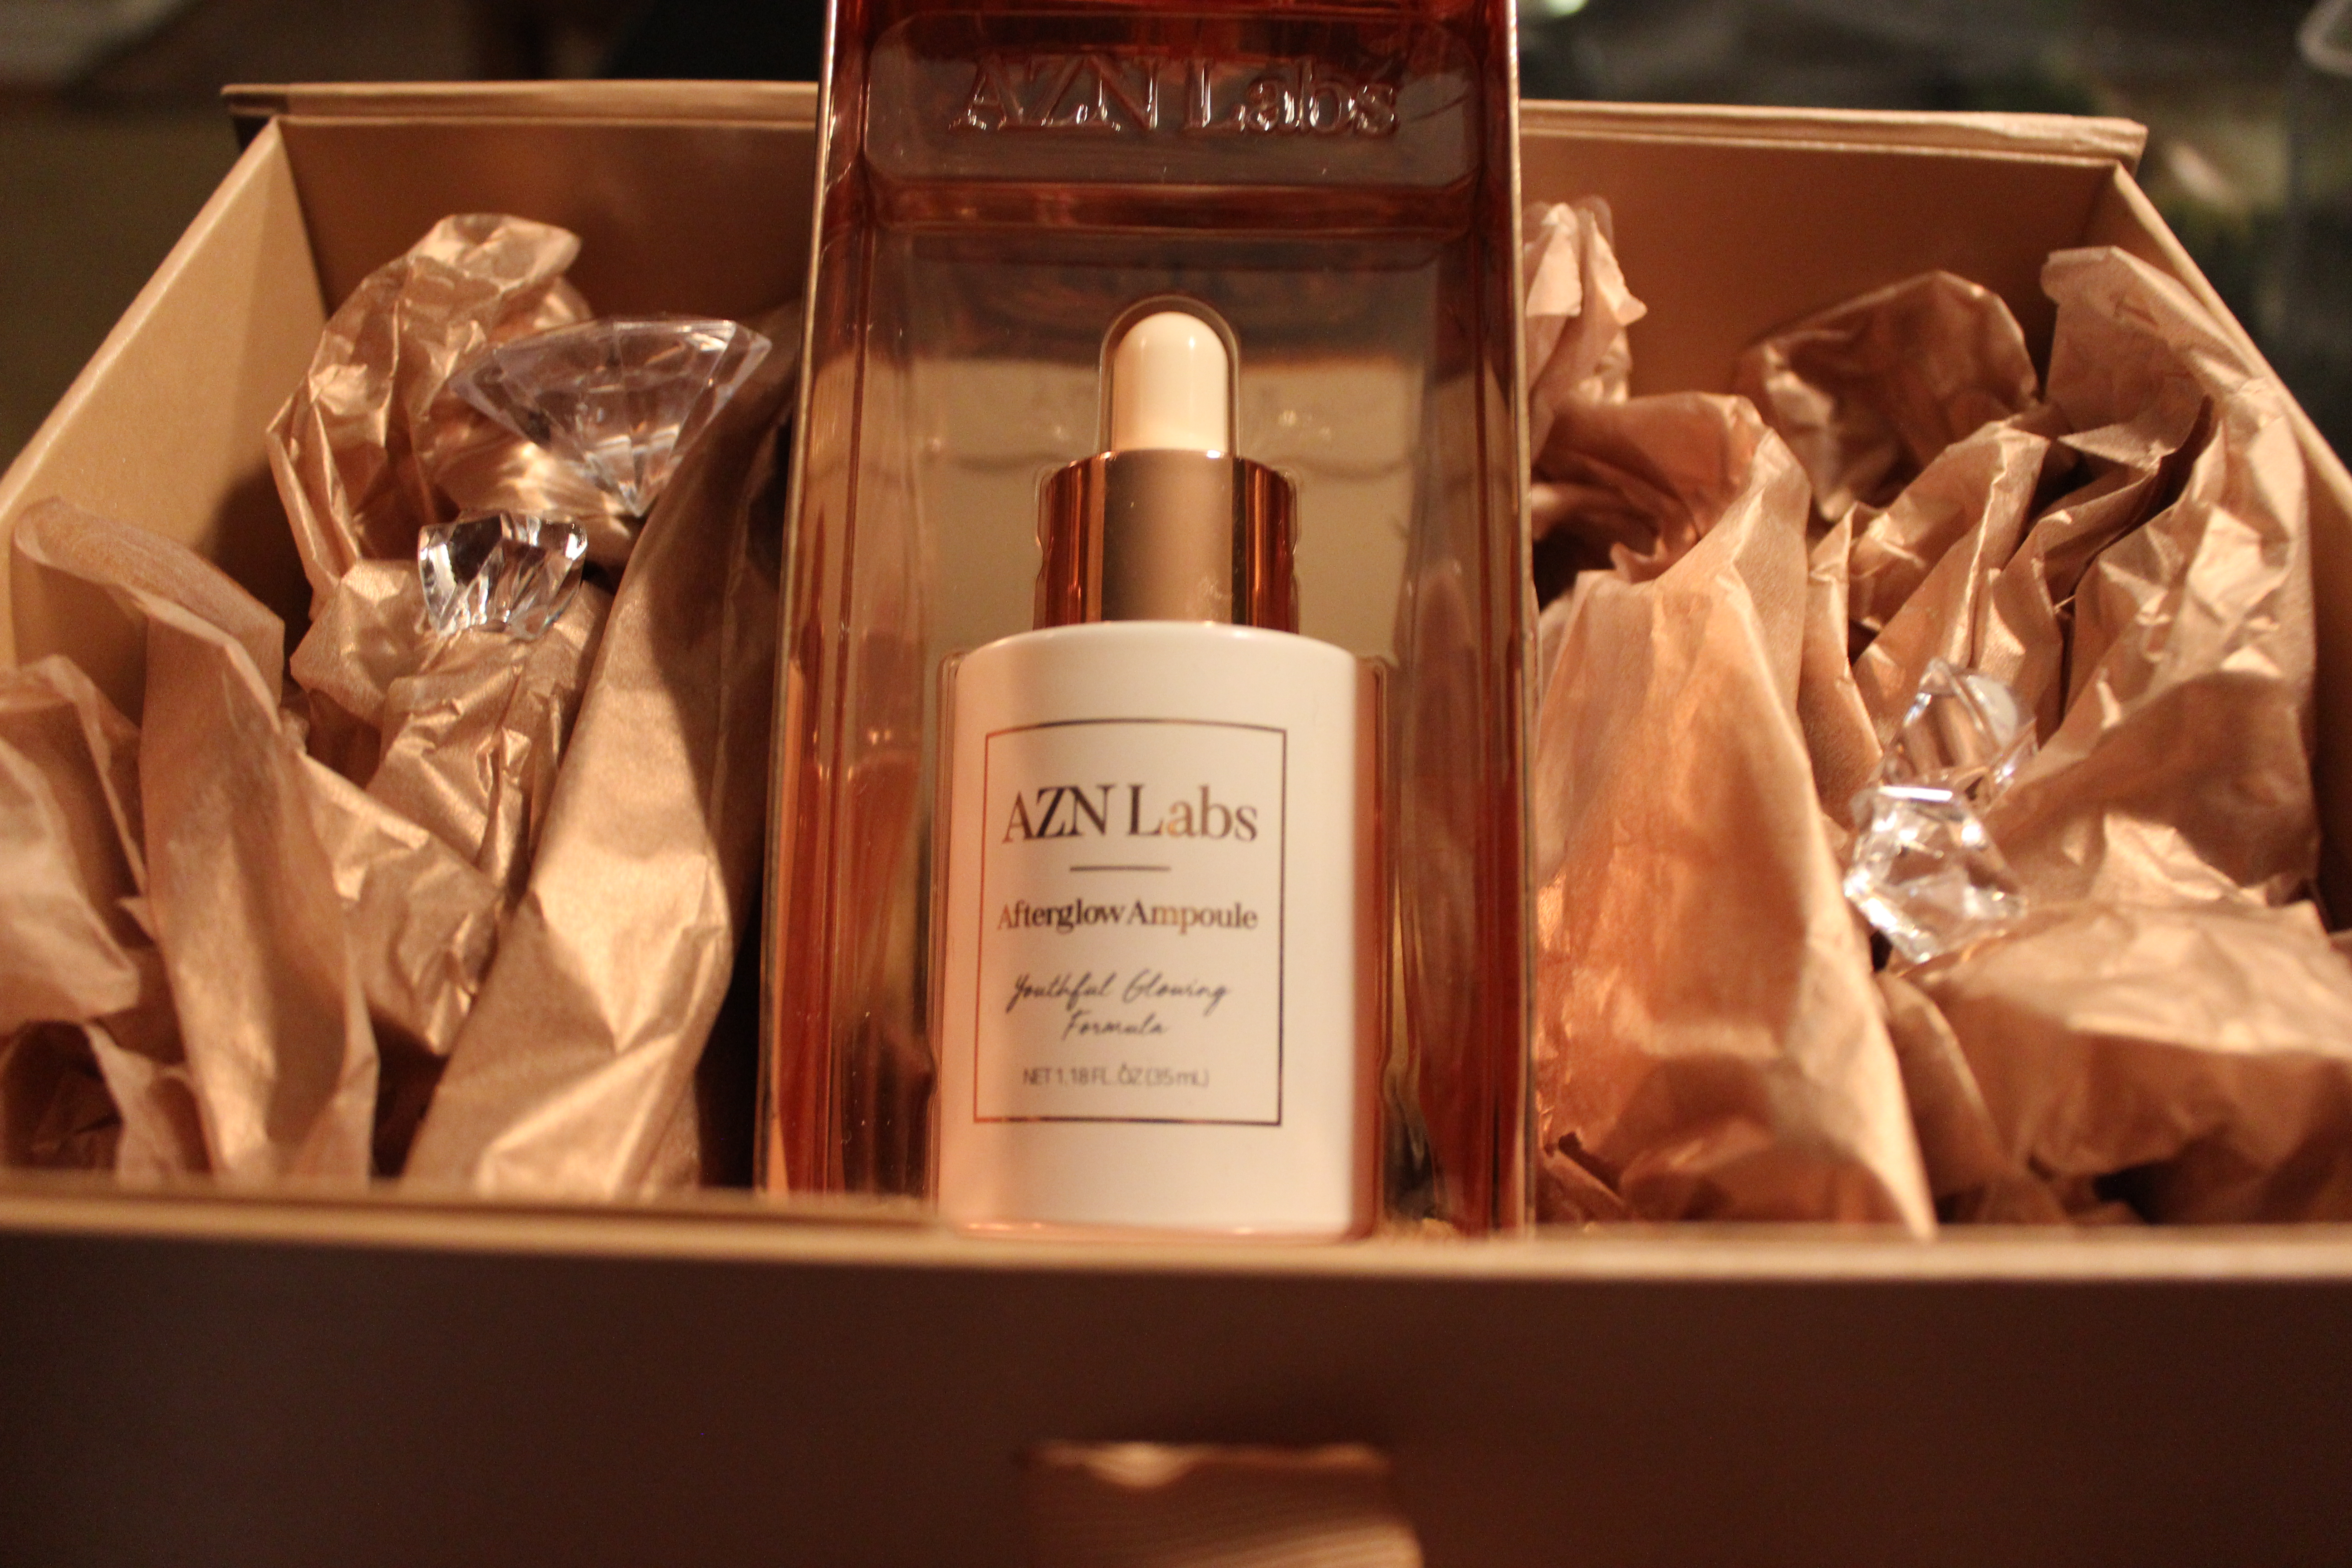 Unveiling Afterglow Ampoule by AZN Labs, First Product Line Providing a Miracle Blend of J + K-Beauty